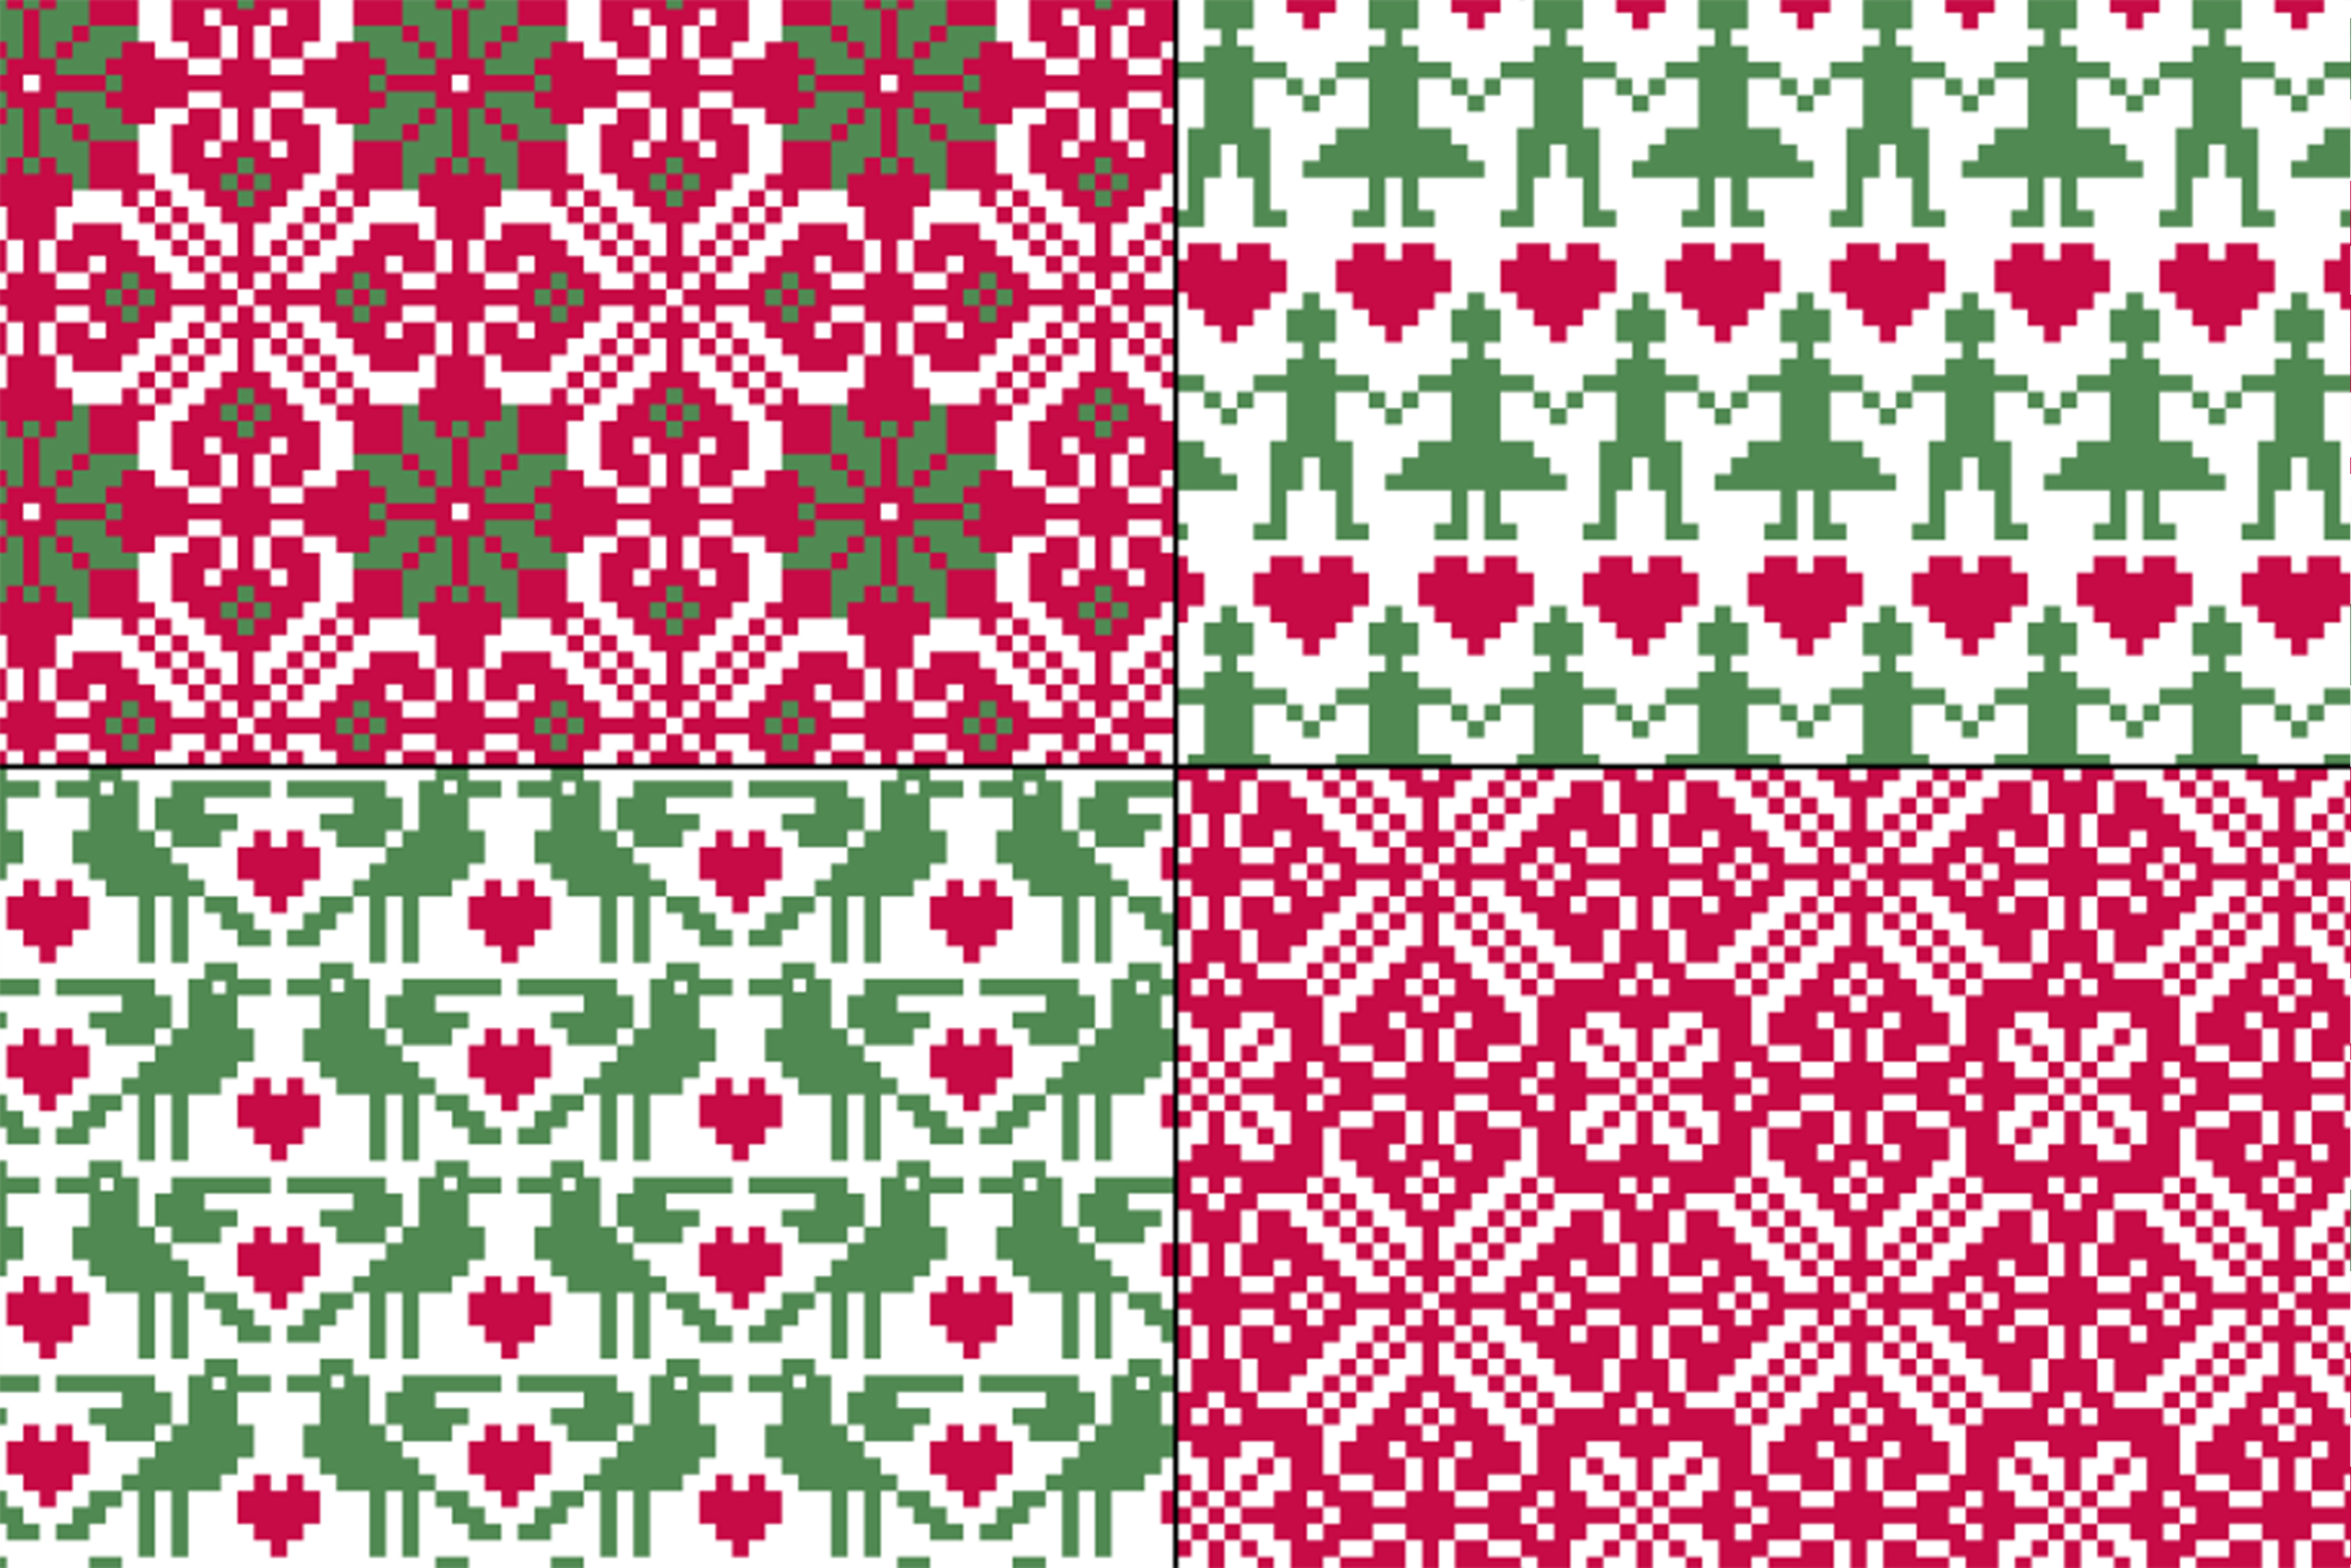 Seamless Nordic Patterns & Graphics example image 4